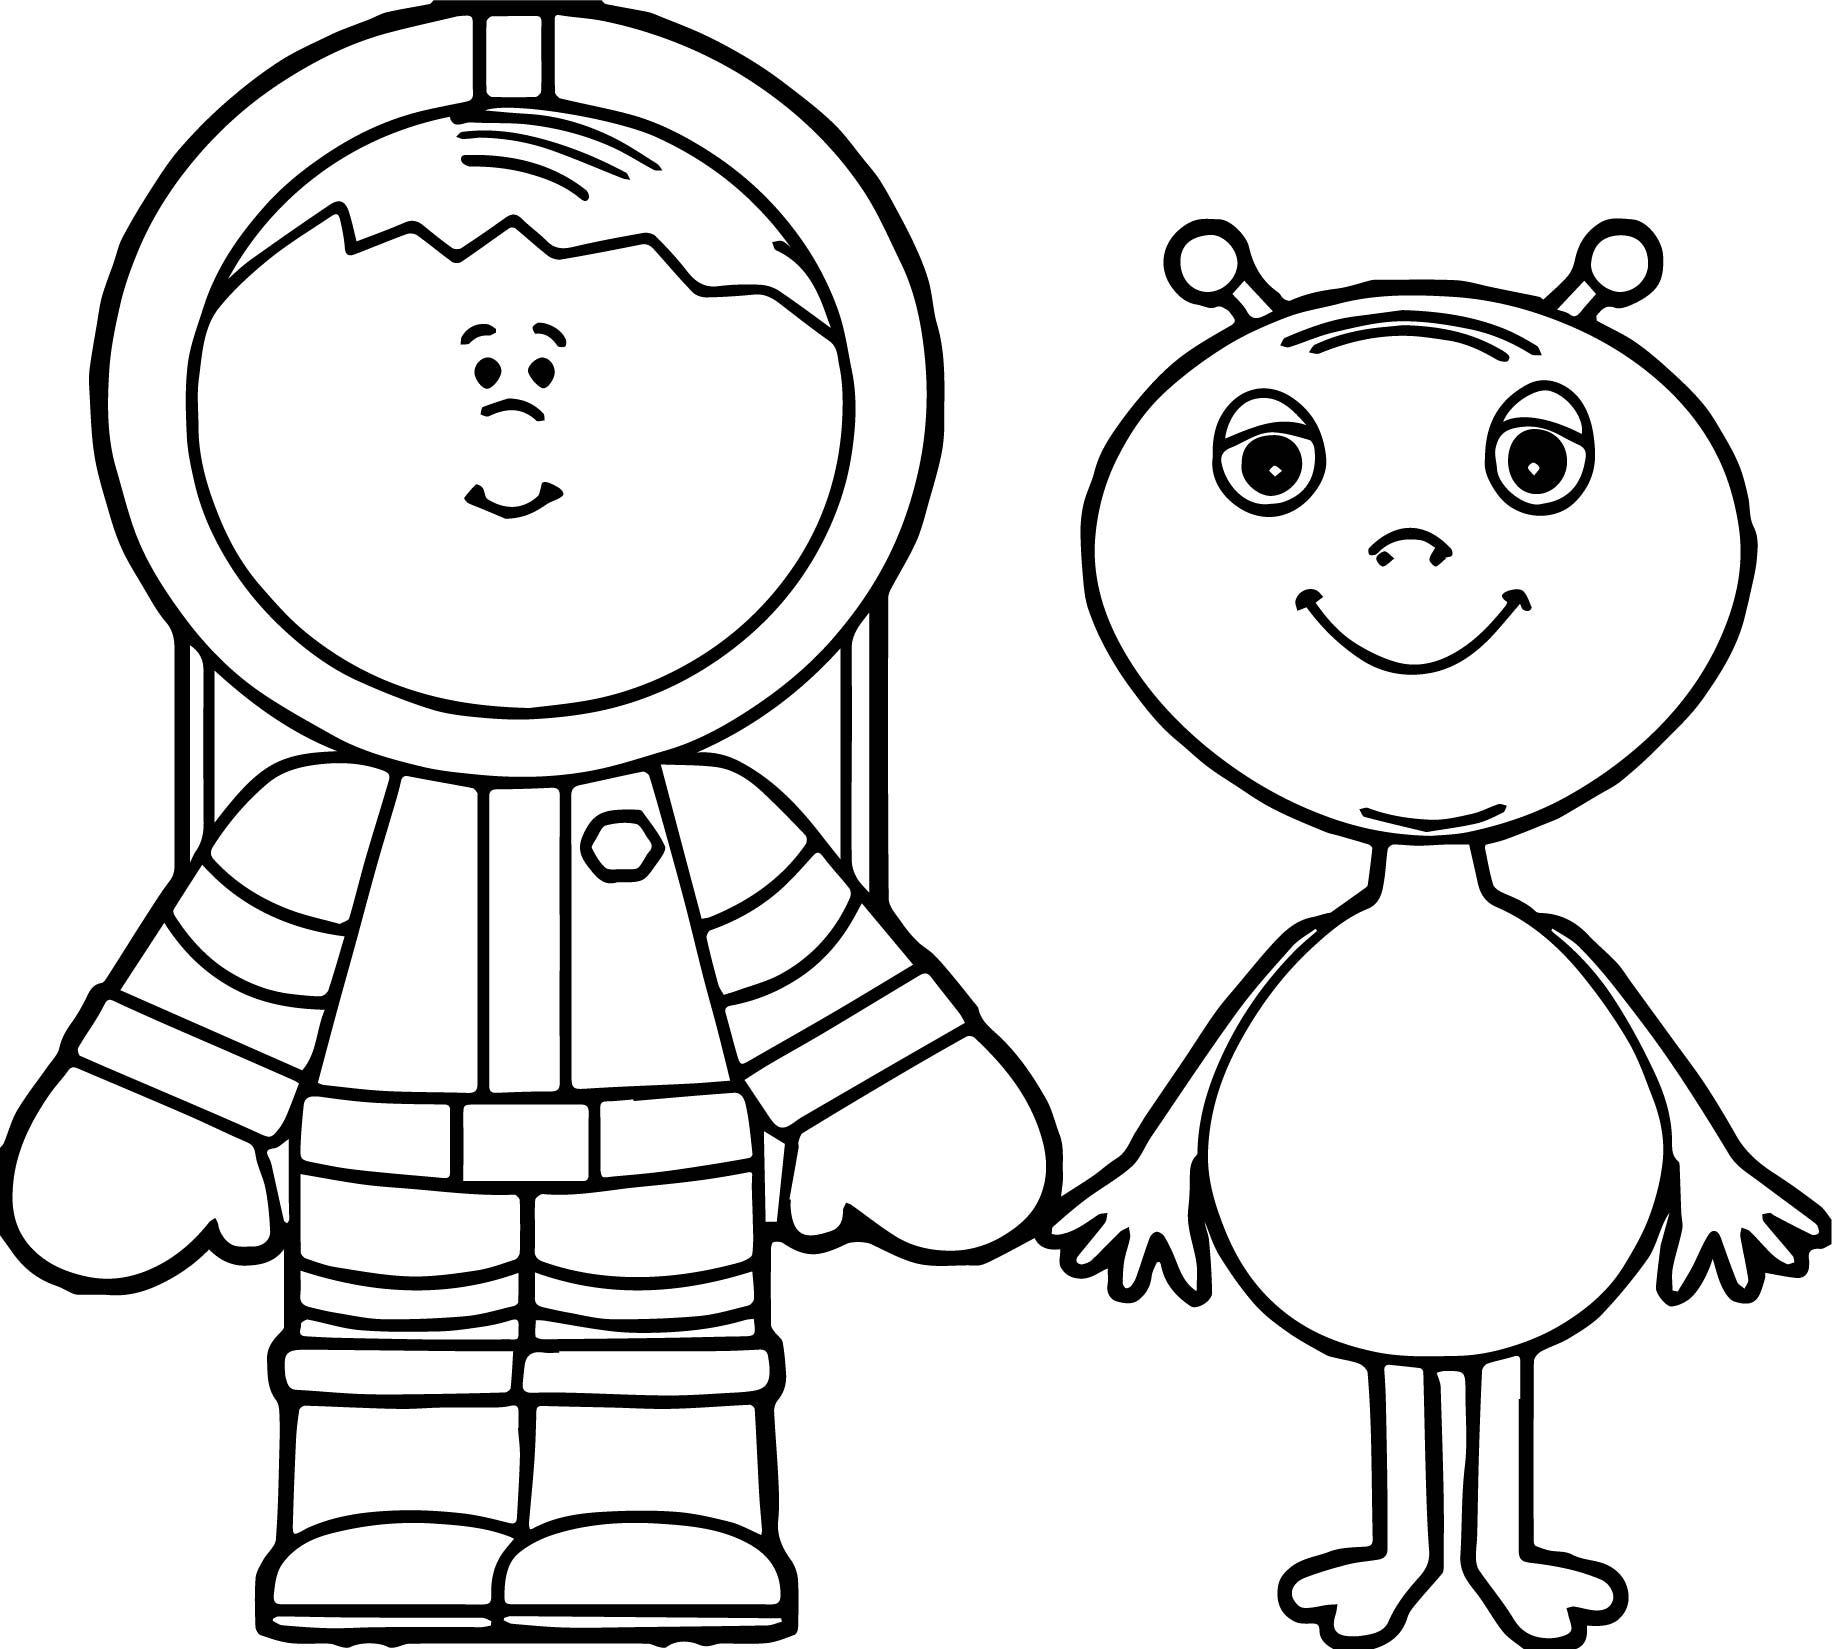 preschool astronaut printables - HD 1832×1649